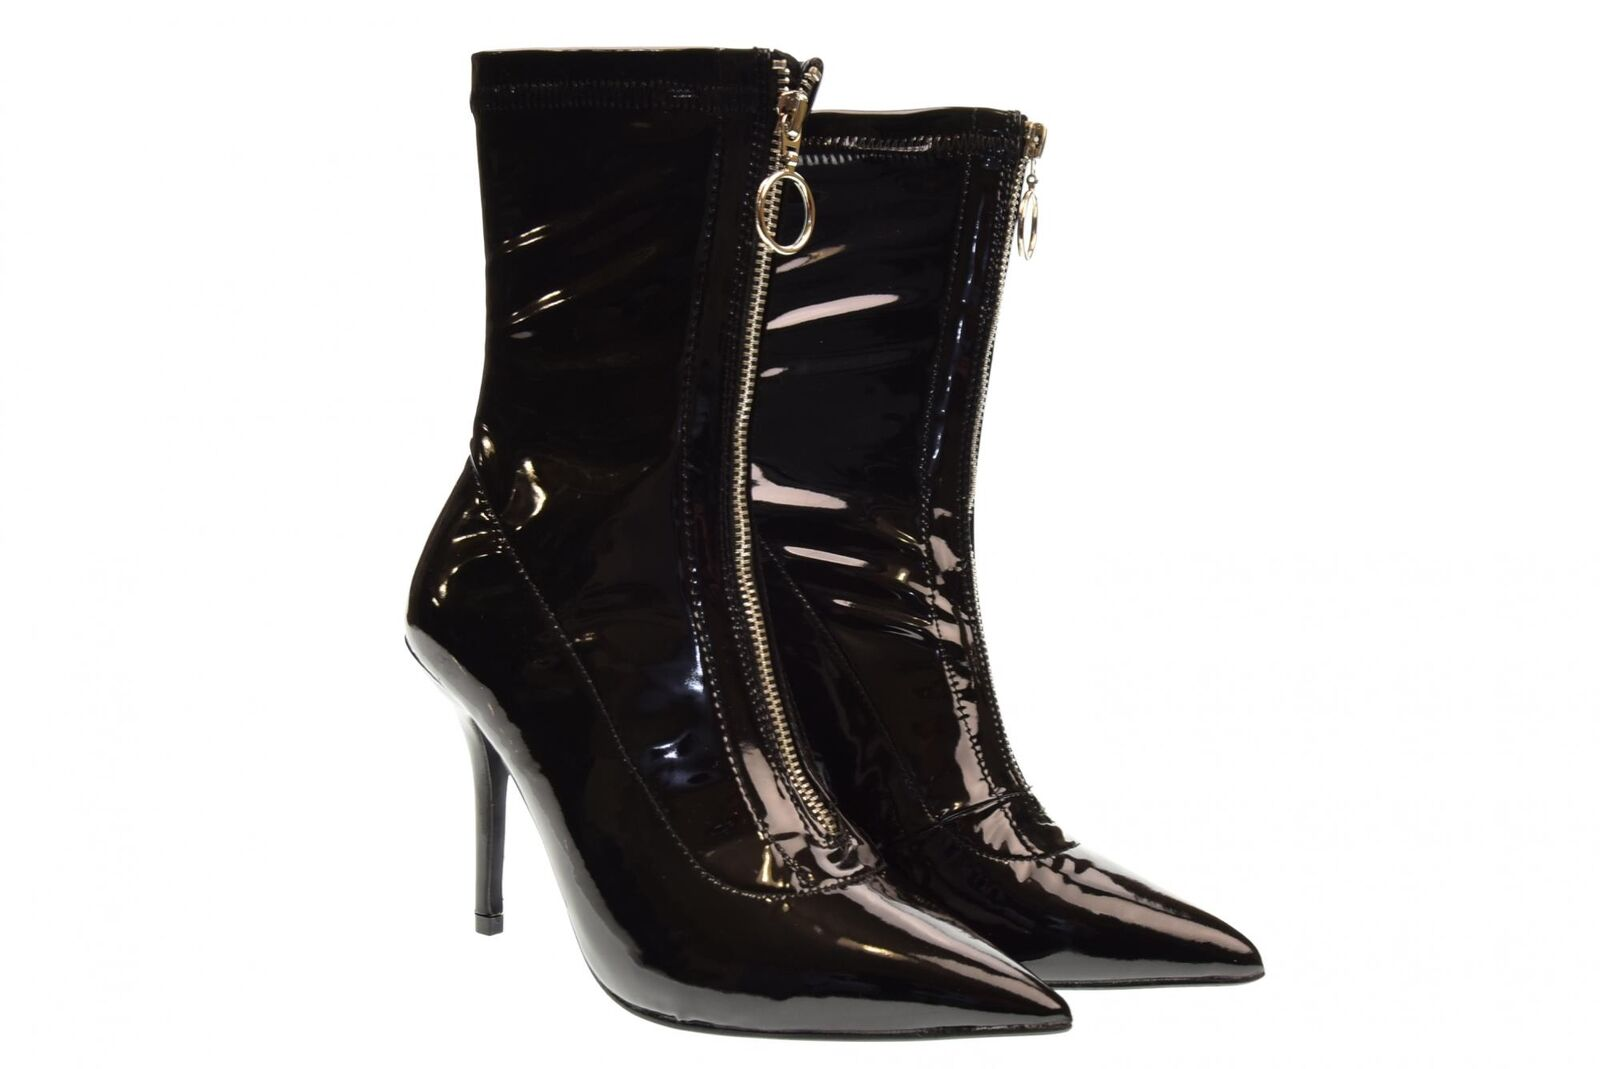 gold&gold A18u shoes woman high heel ankle boots GD05V black